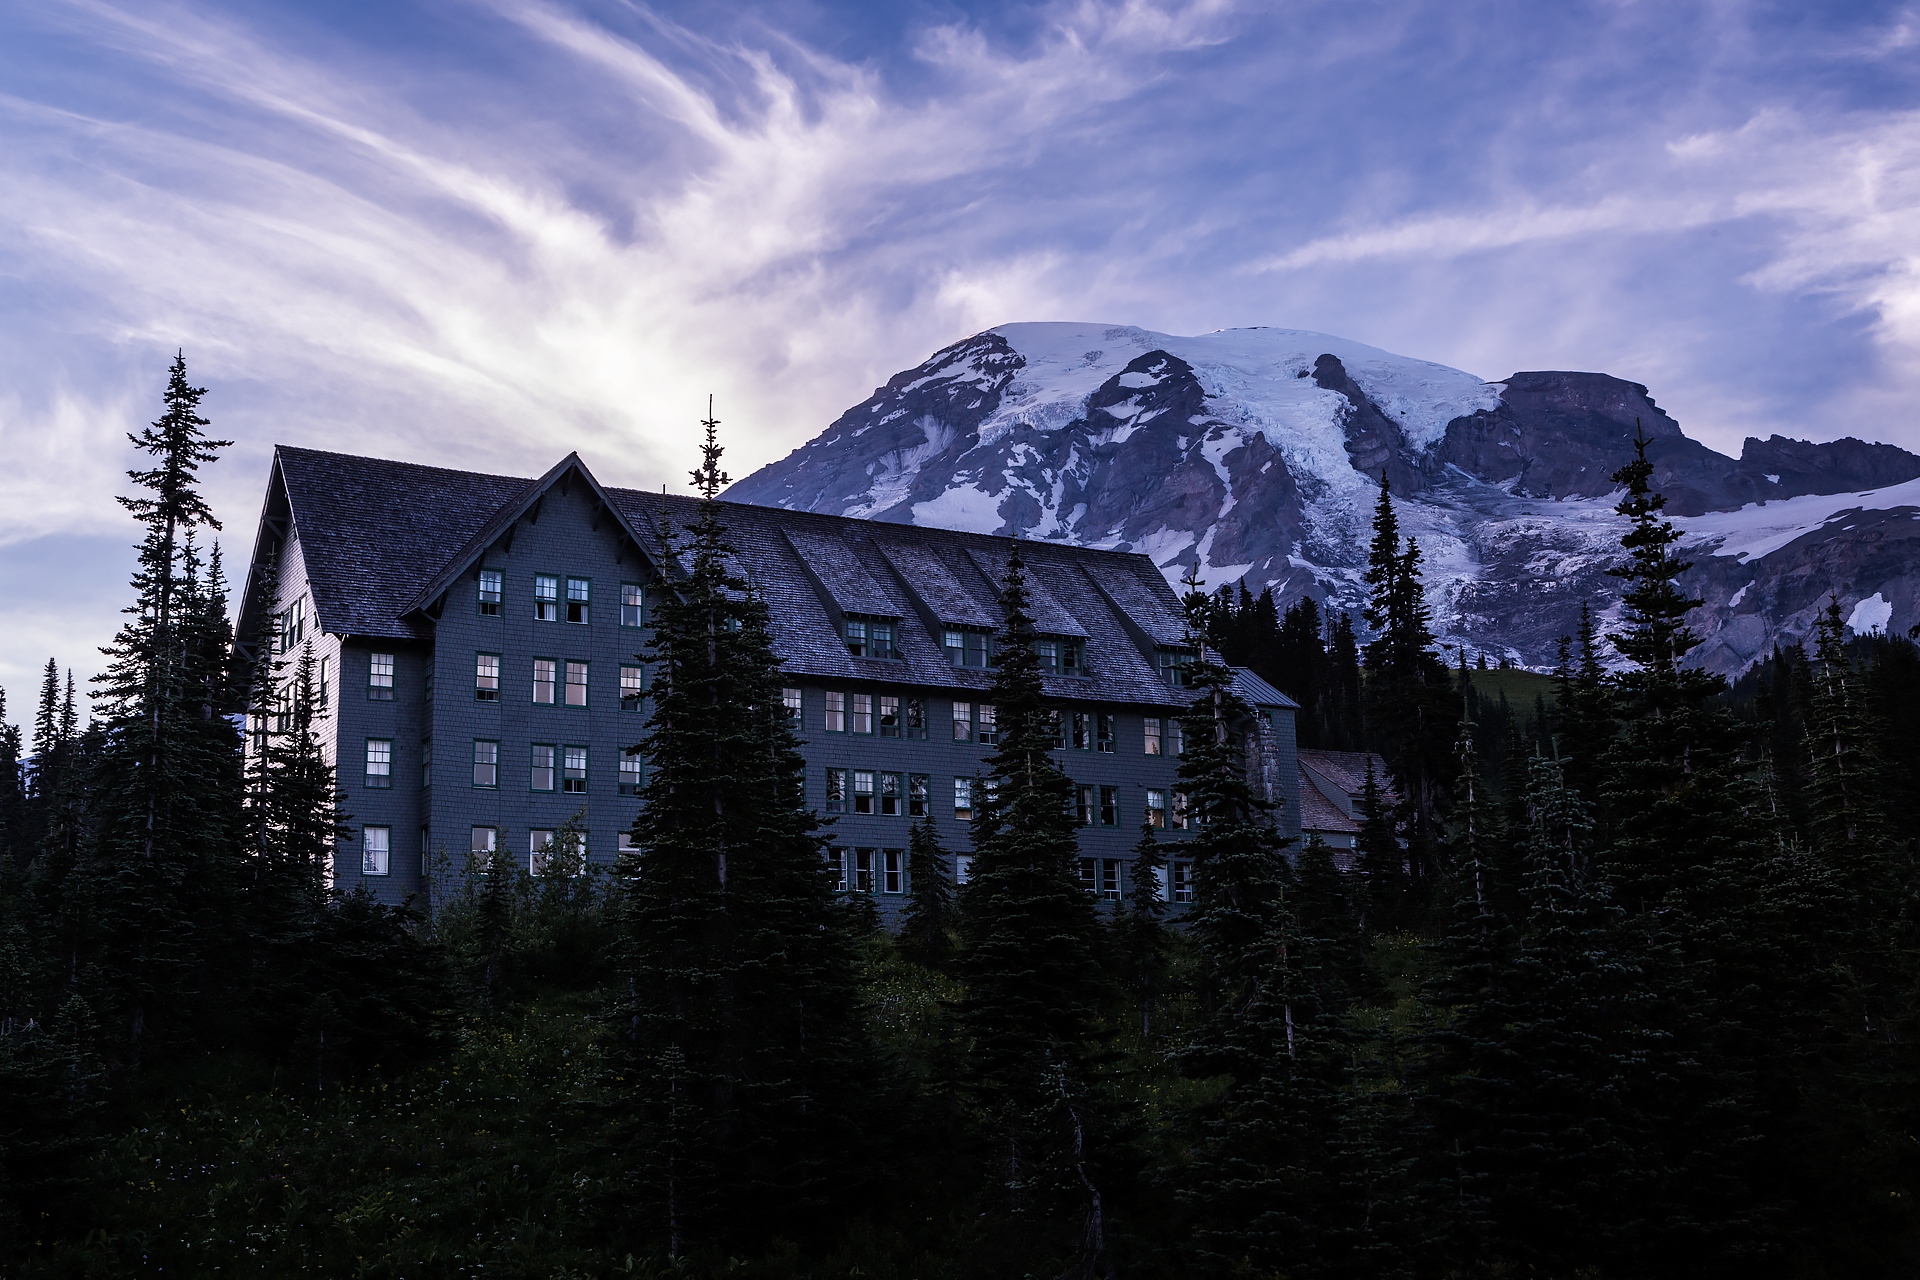 20130821-Mount-Rainier-Day-1-079.jpg